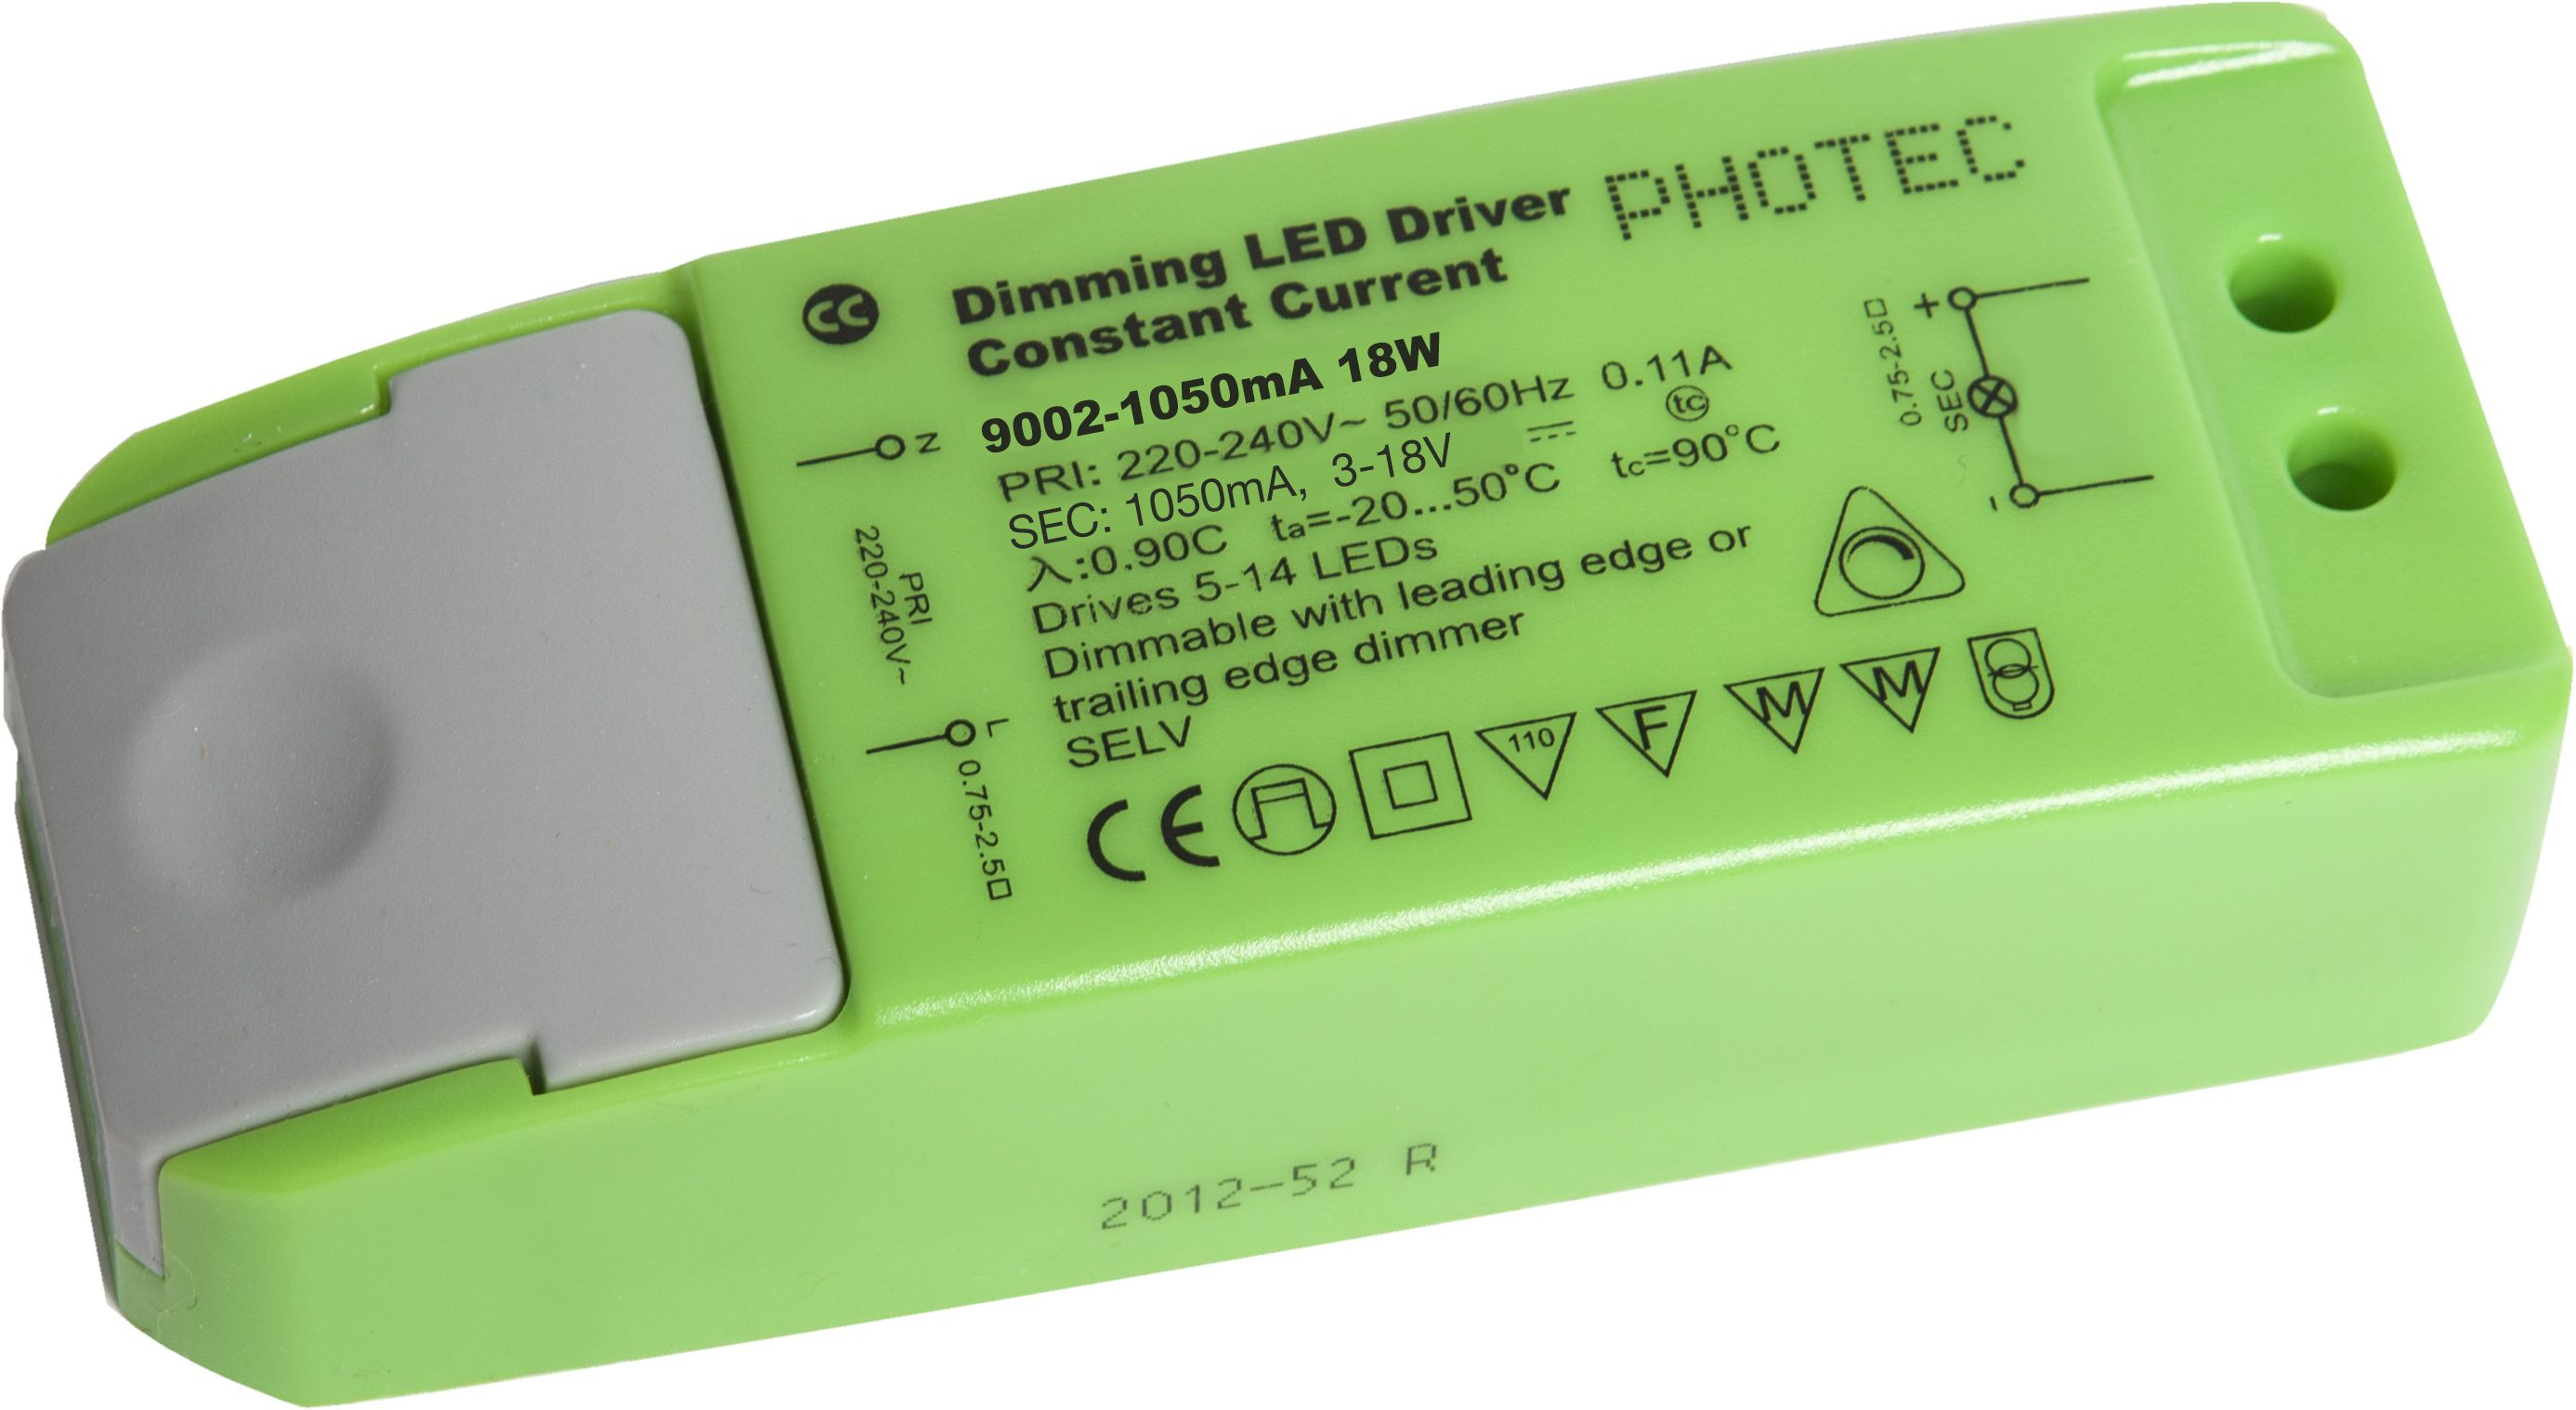 9 Best Led Drivers Images On Pinterest Drives 10 Leds